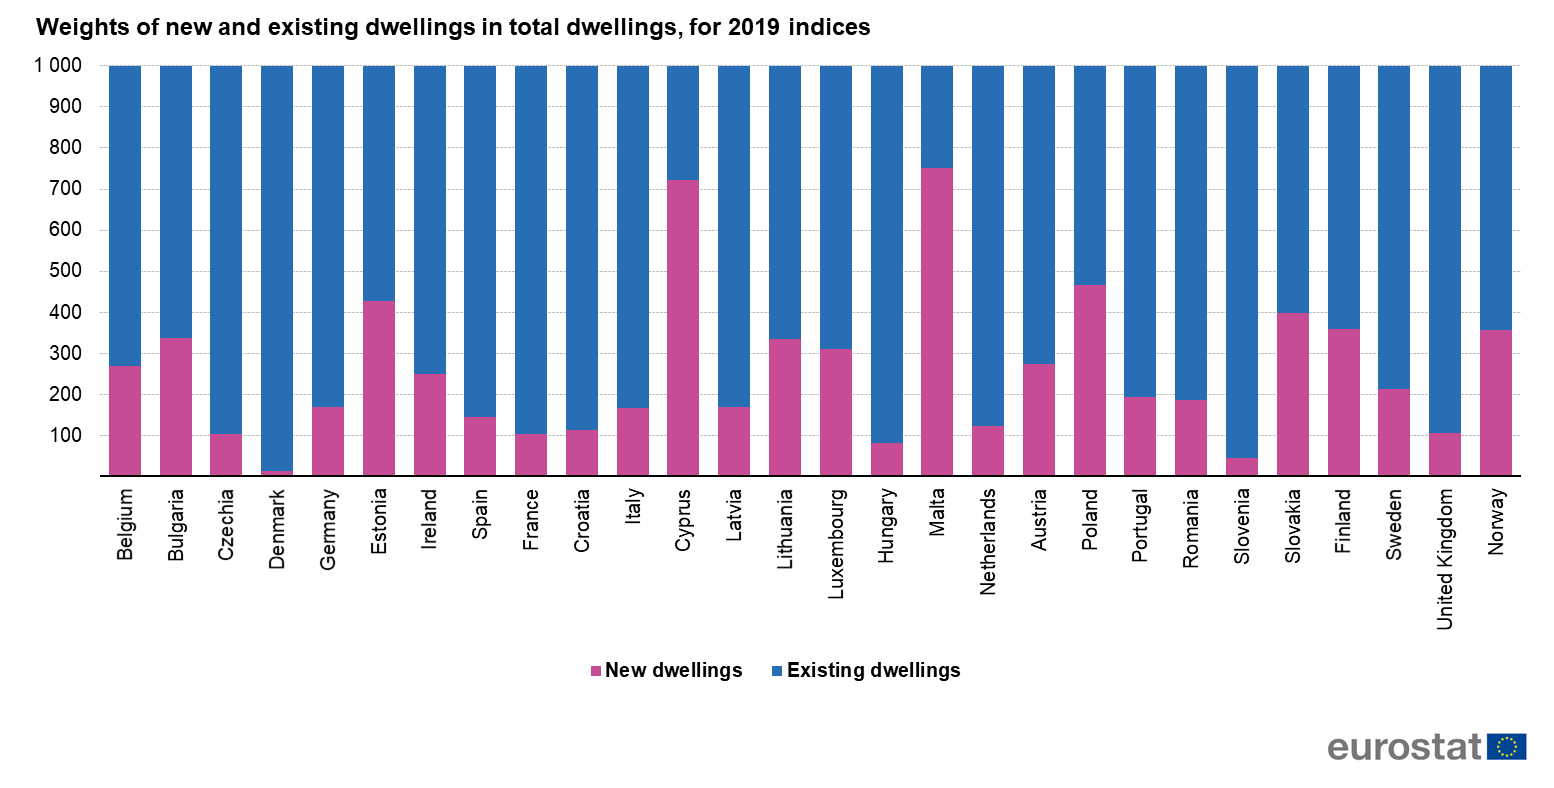 File:Weights of new and existing dwellings in total dwellings, for